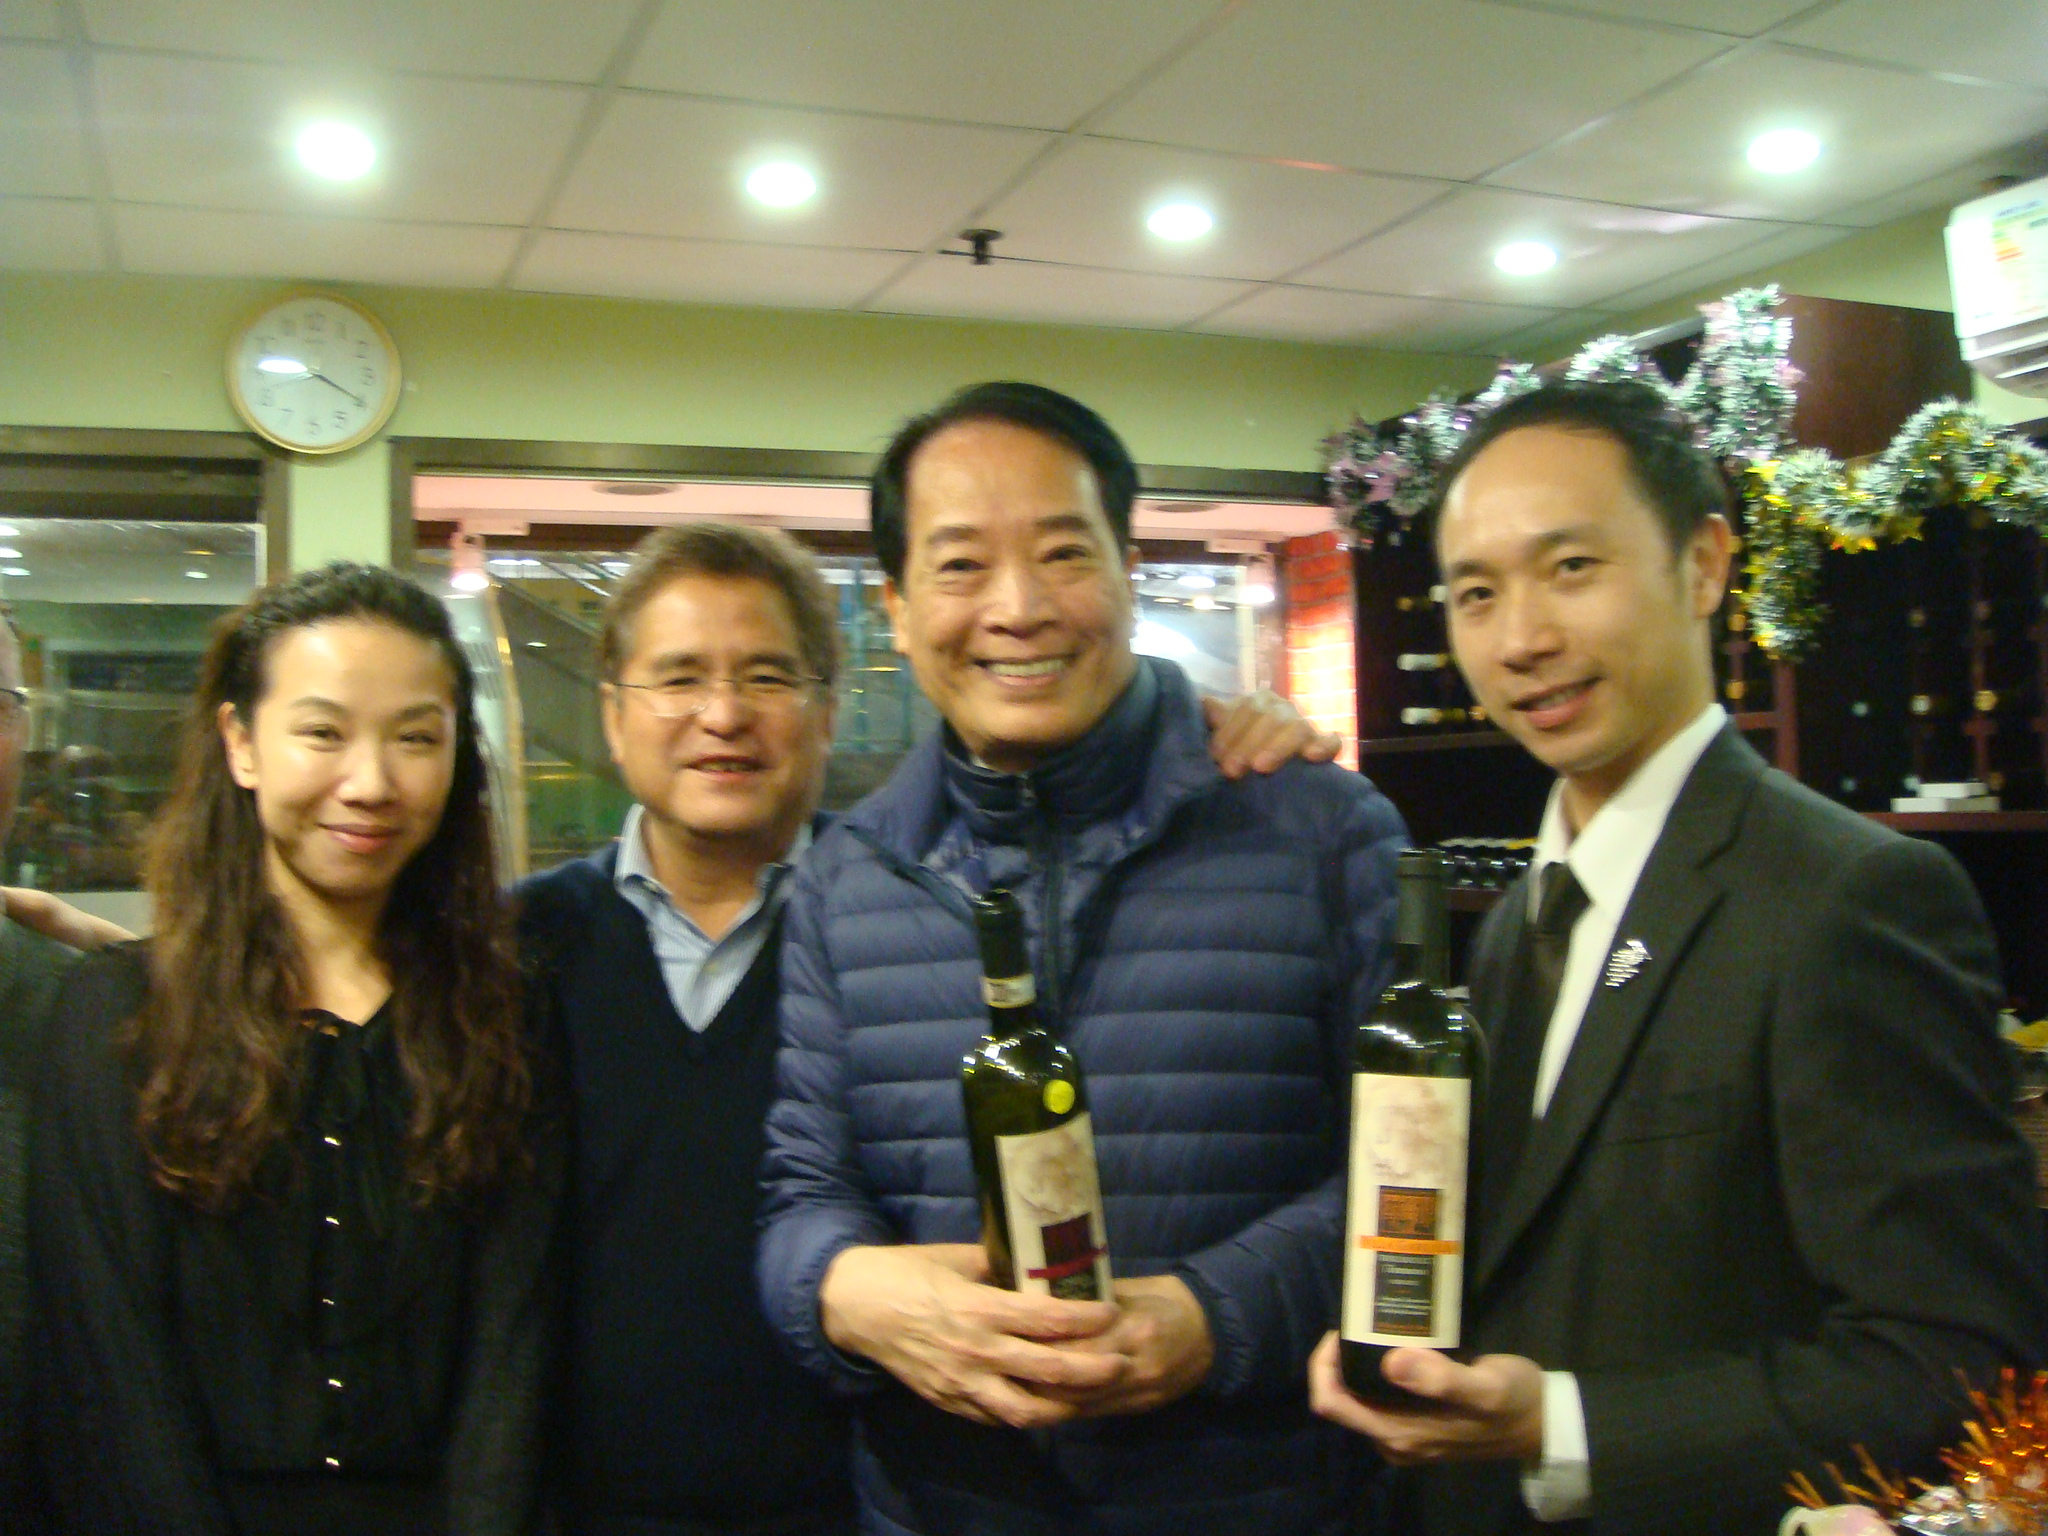 Stephen Ho & Gary Tsui from the Tender Group in Sheung Wan-Hong Kong recently hosted Villa Gabriella organic wines for a tasting with Hong Kong Sommelier-Davy Leung.